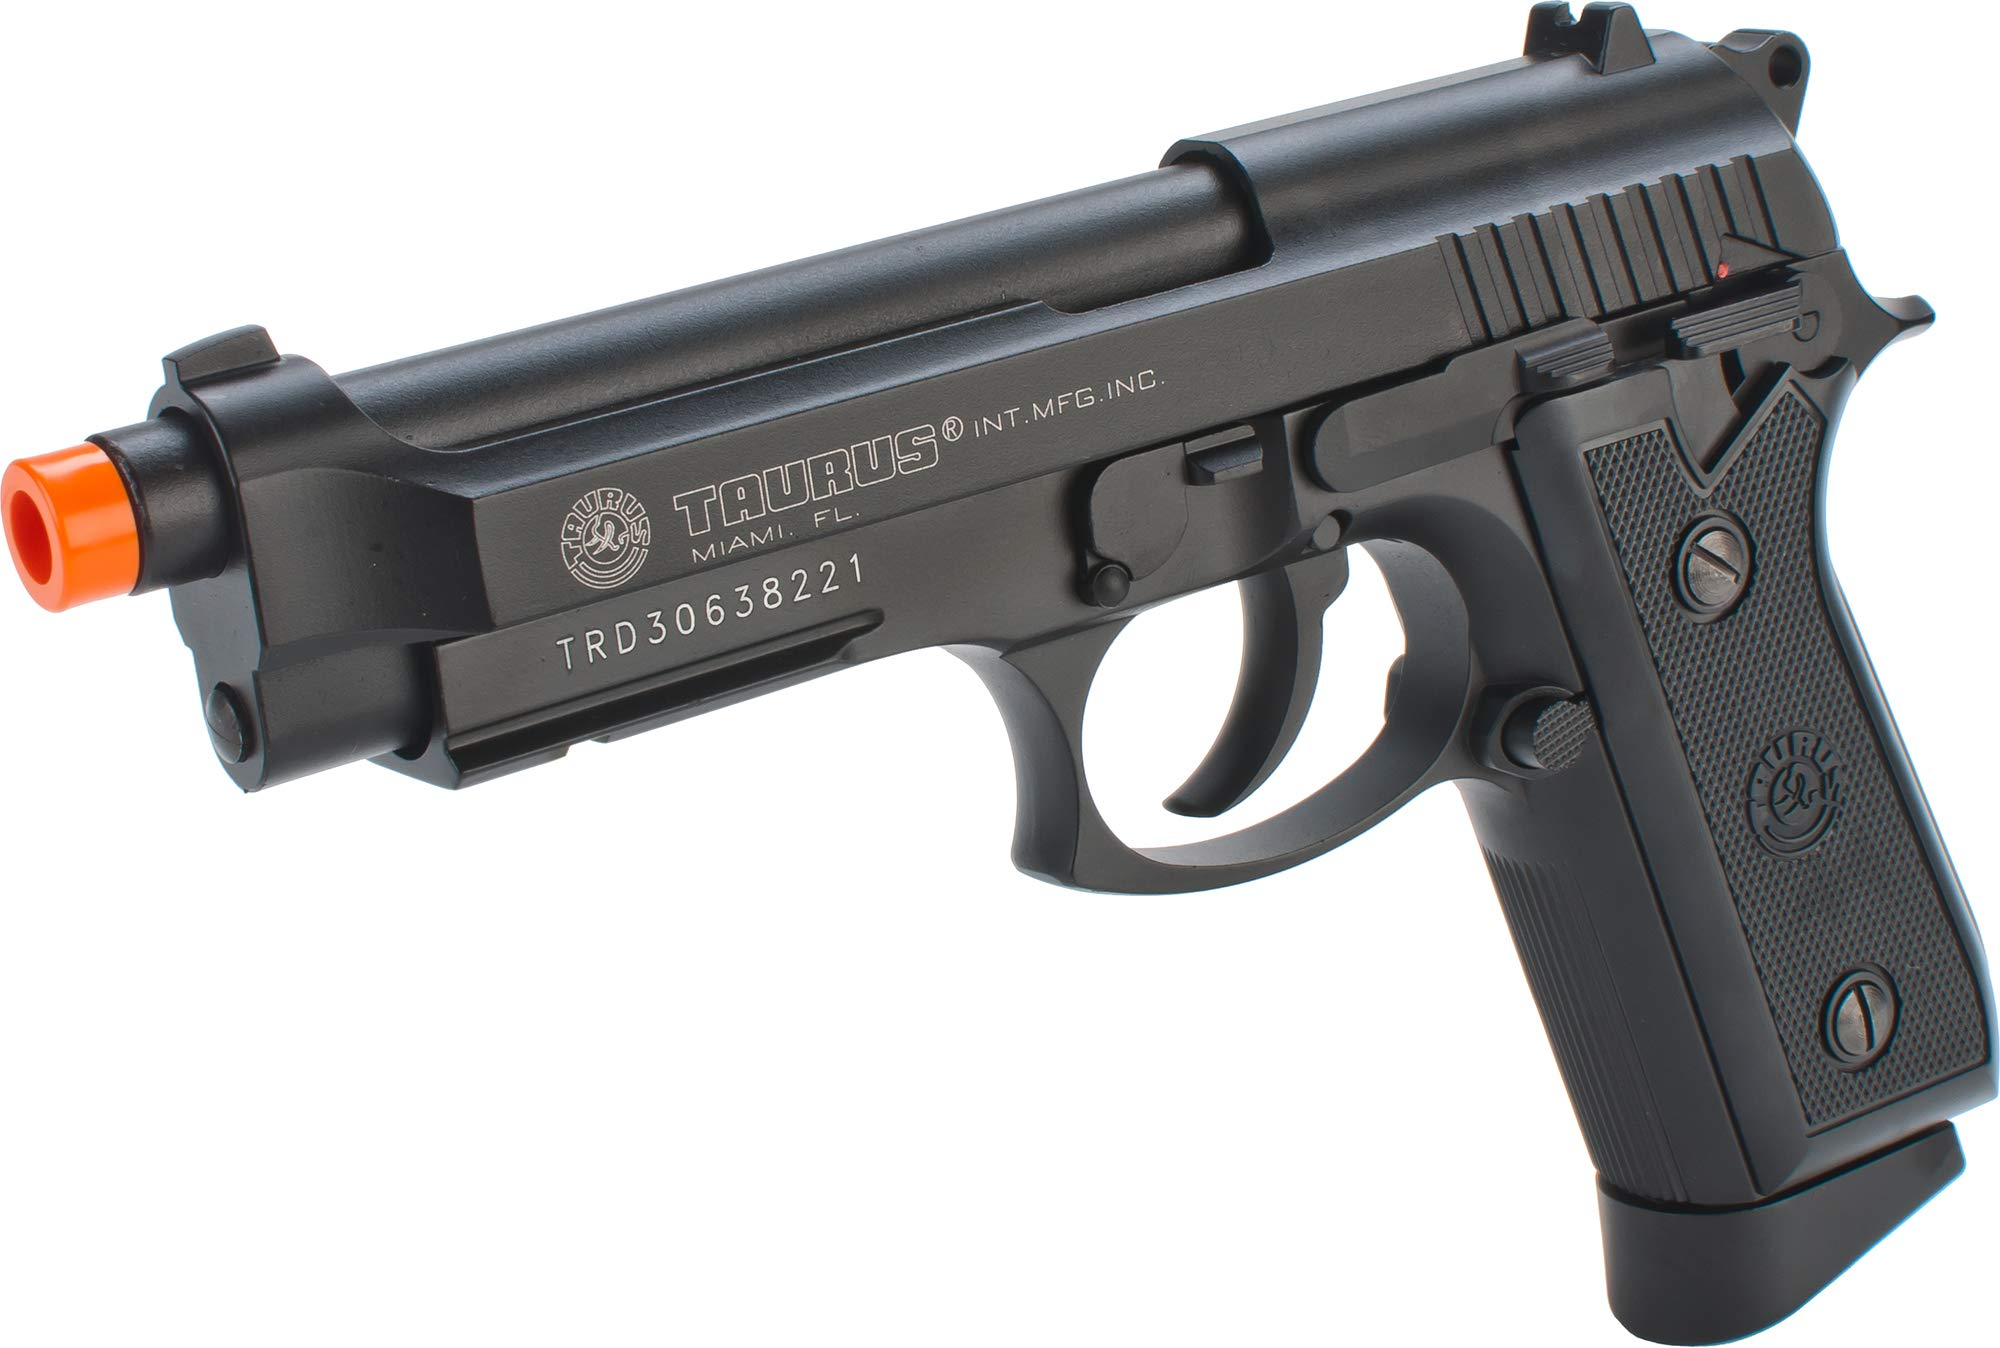 Pistola Airsoft Full Metal CO2 Taurus PT99 con Hop-Up y Blowback, 280-300 FPS